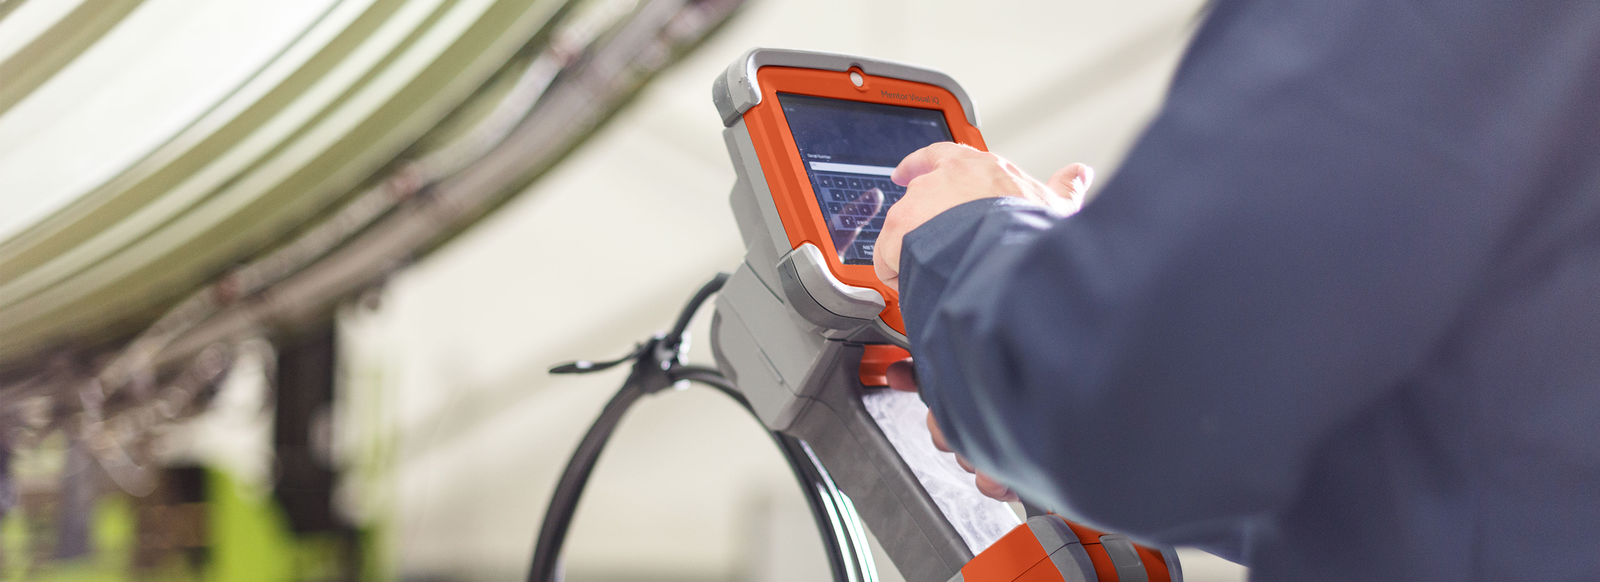 ndt equipment Rental Program remote visual inspection